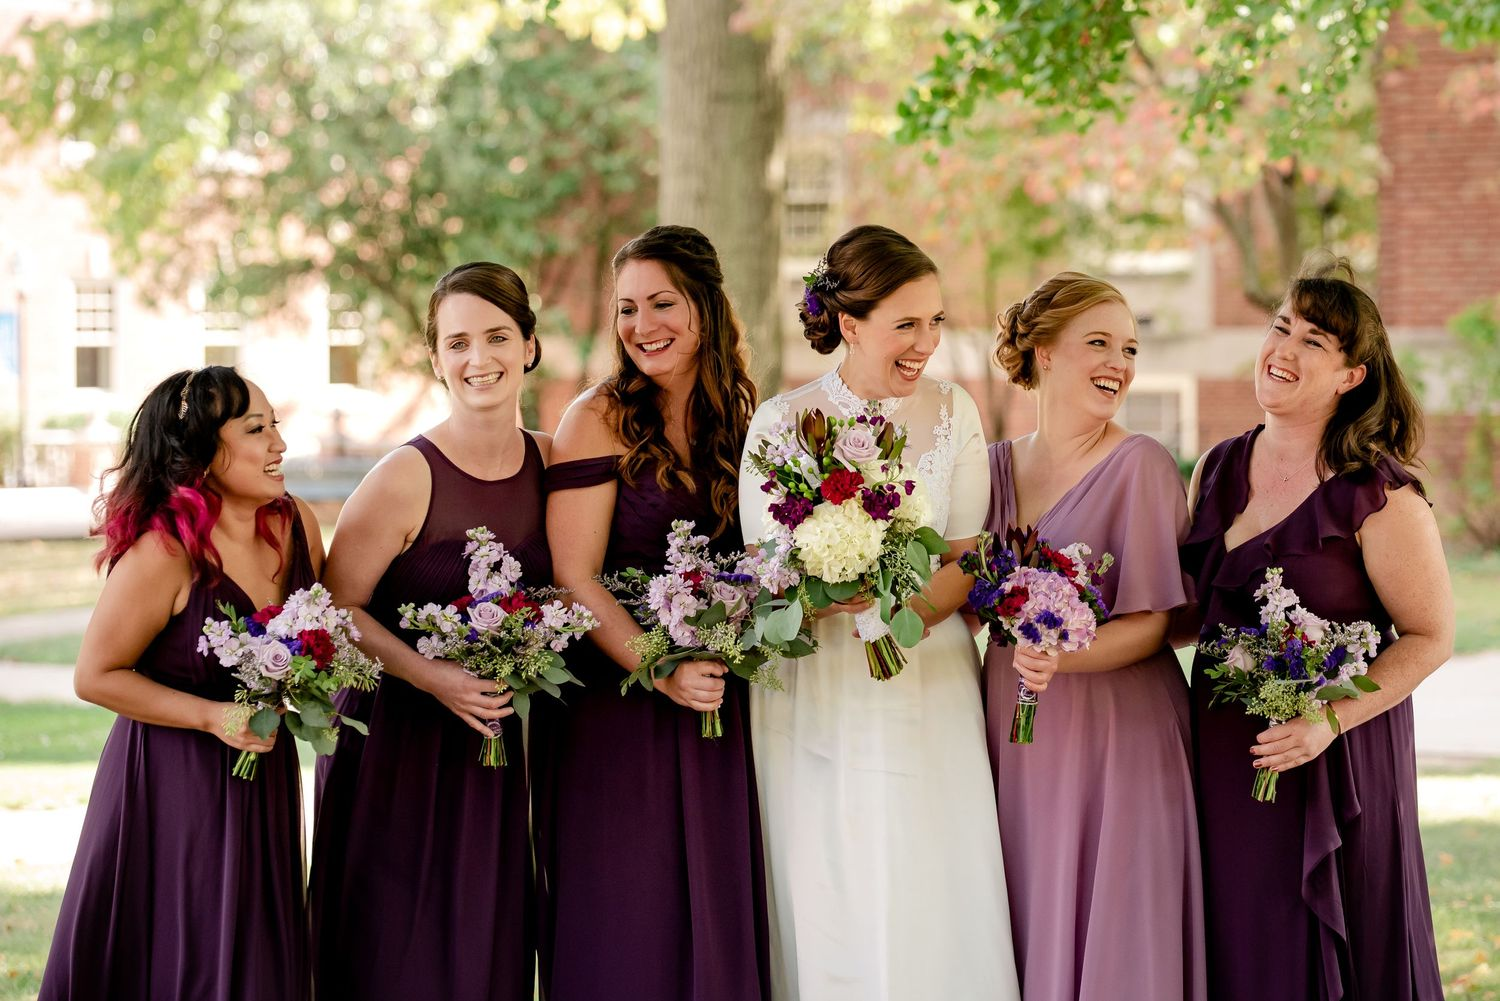 bridal party with bridesmaids laughing wearing marroon and purple in pittsburgh fall wedding